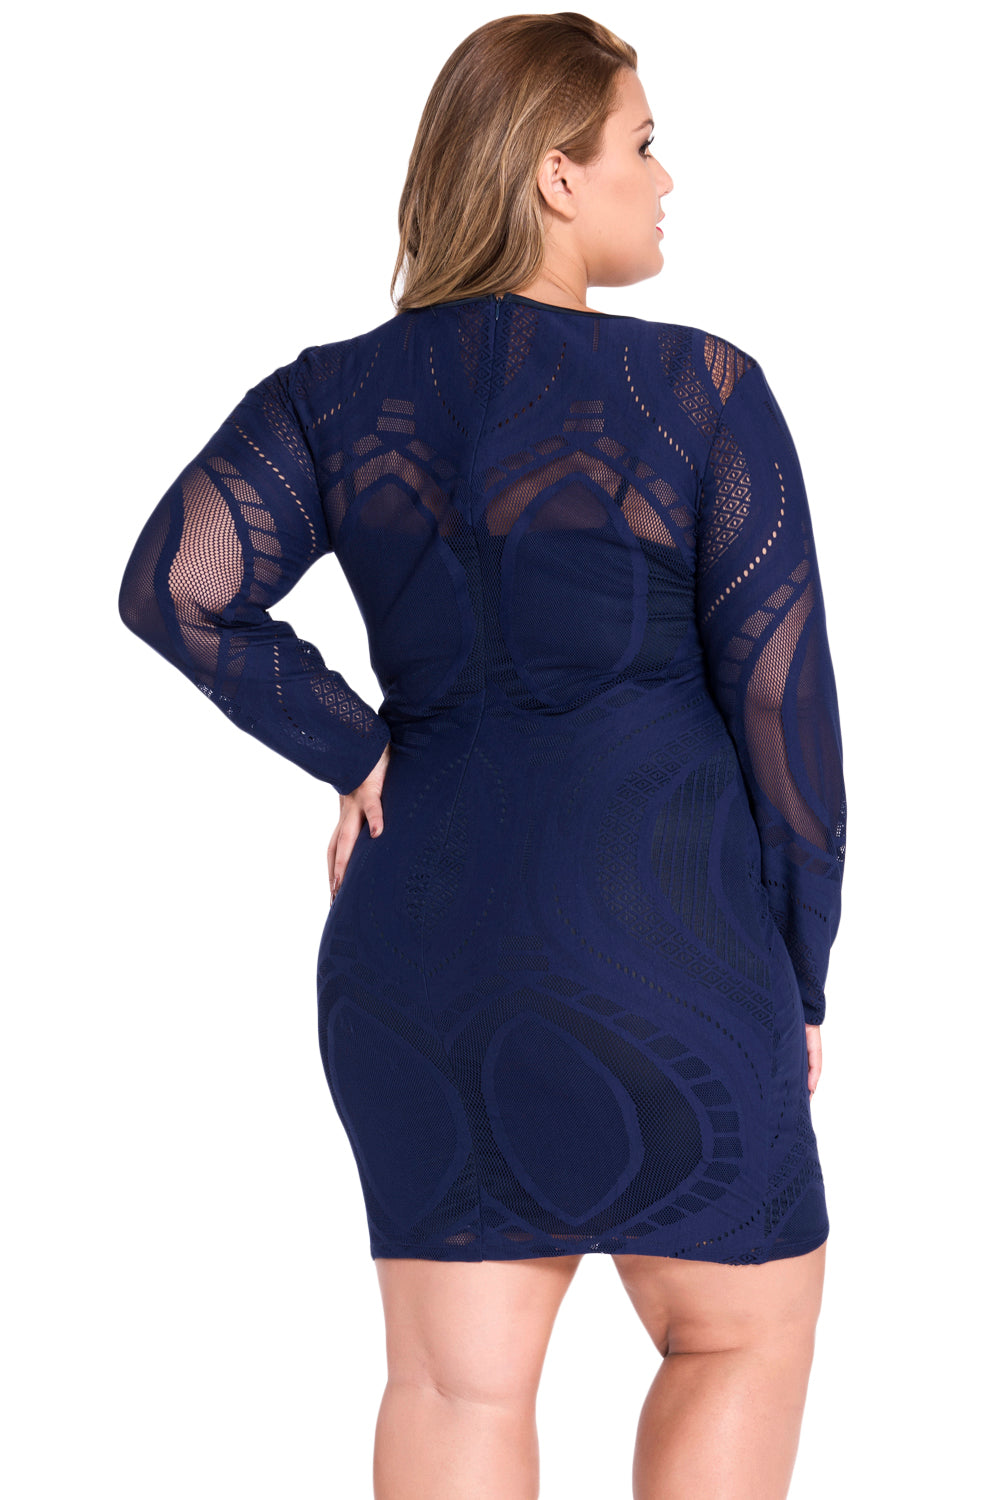 Royal Blue Lace Nude Illusion Long Sleeves Bodycon Dress